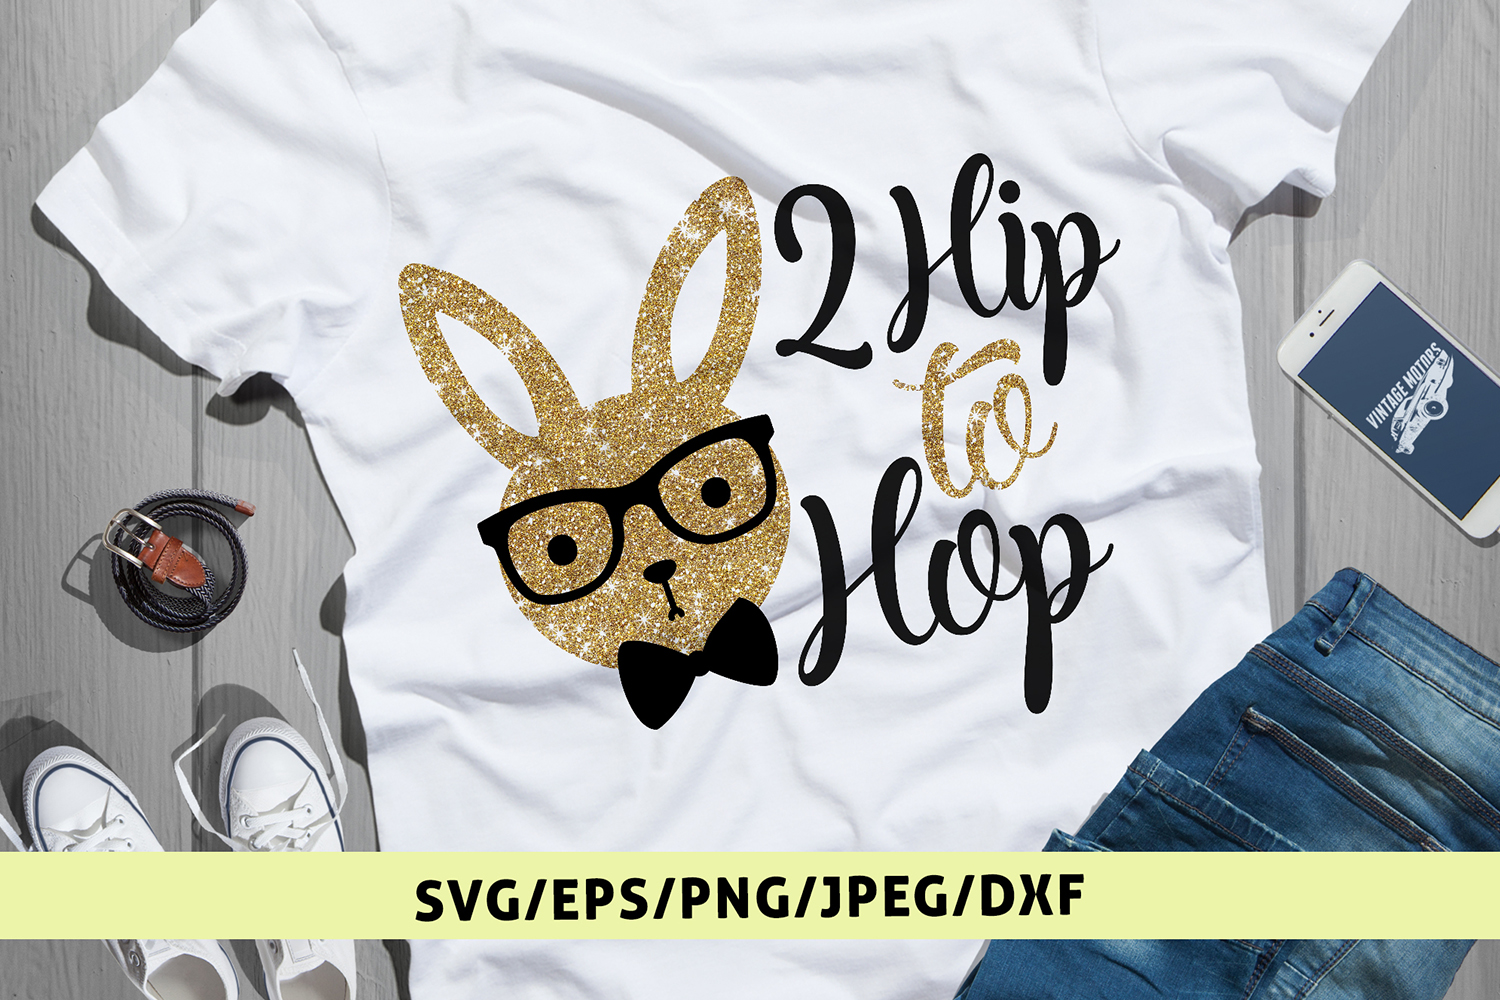 2 Hip To Hop - Easter SVG EPS DXF PNG Cutting Files example image 1